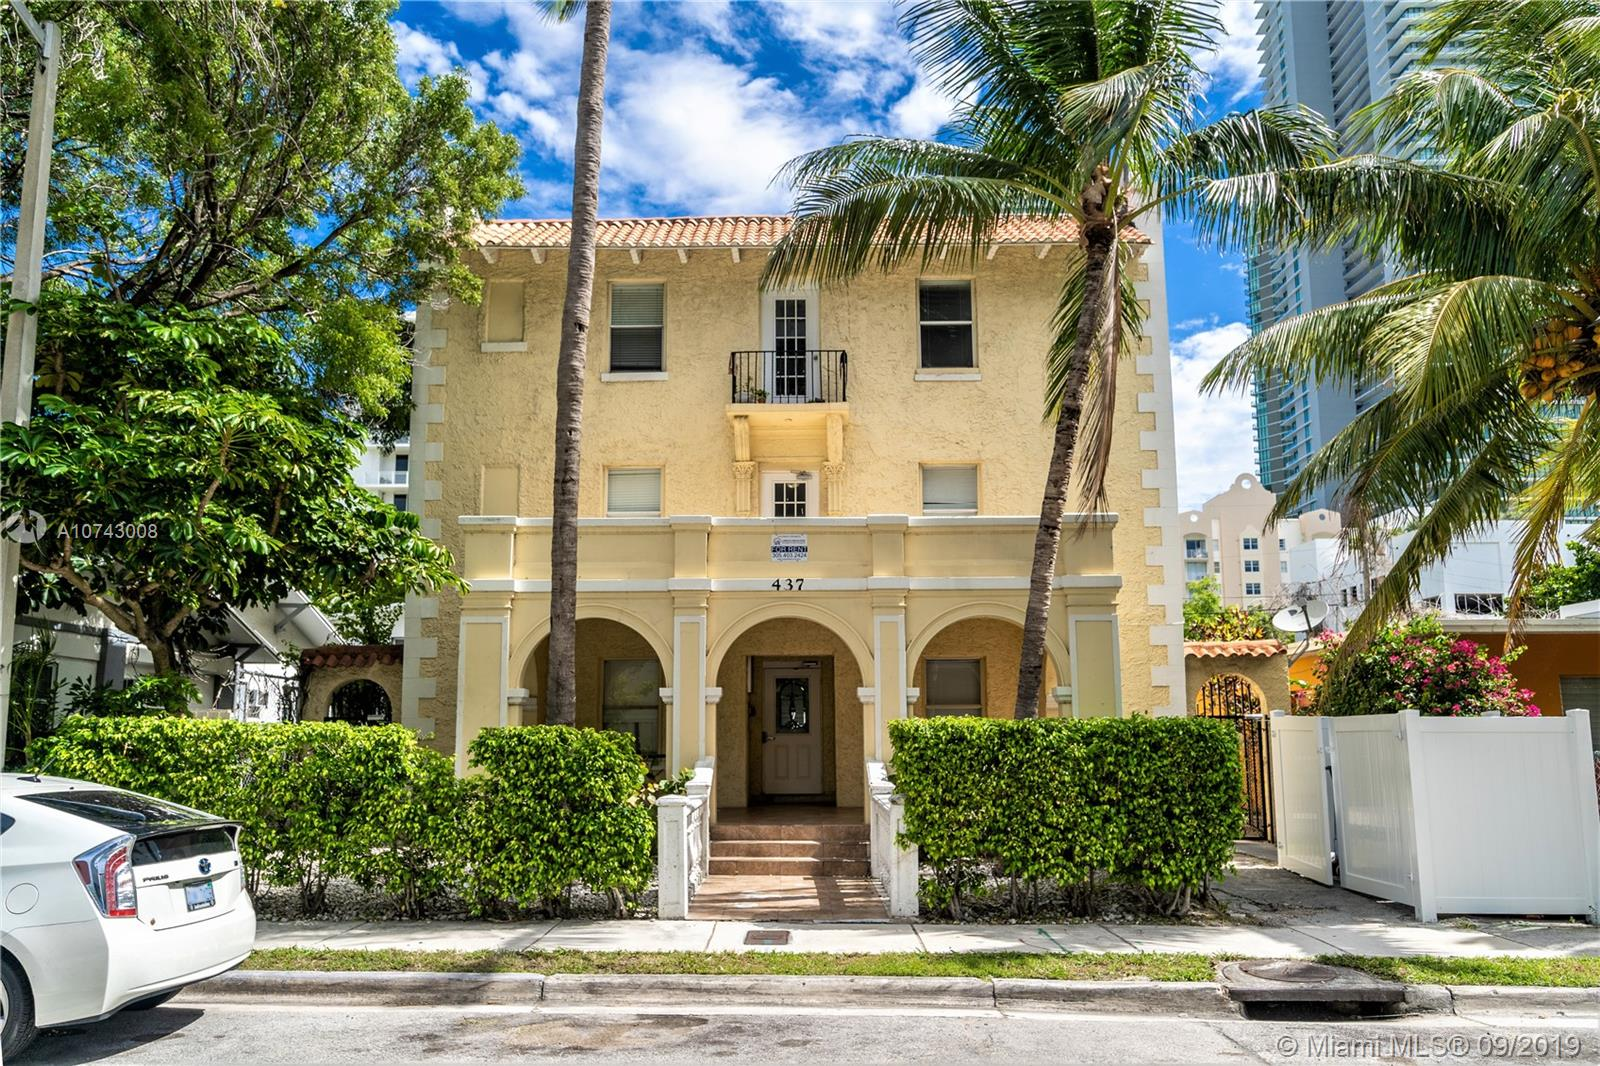 437 N E 29 ST #101 For Sale A10743008, FL